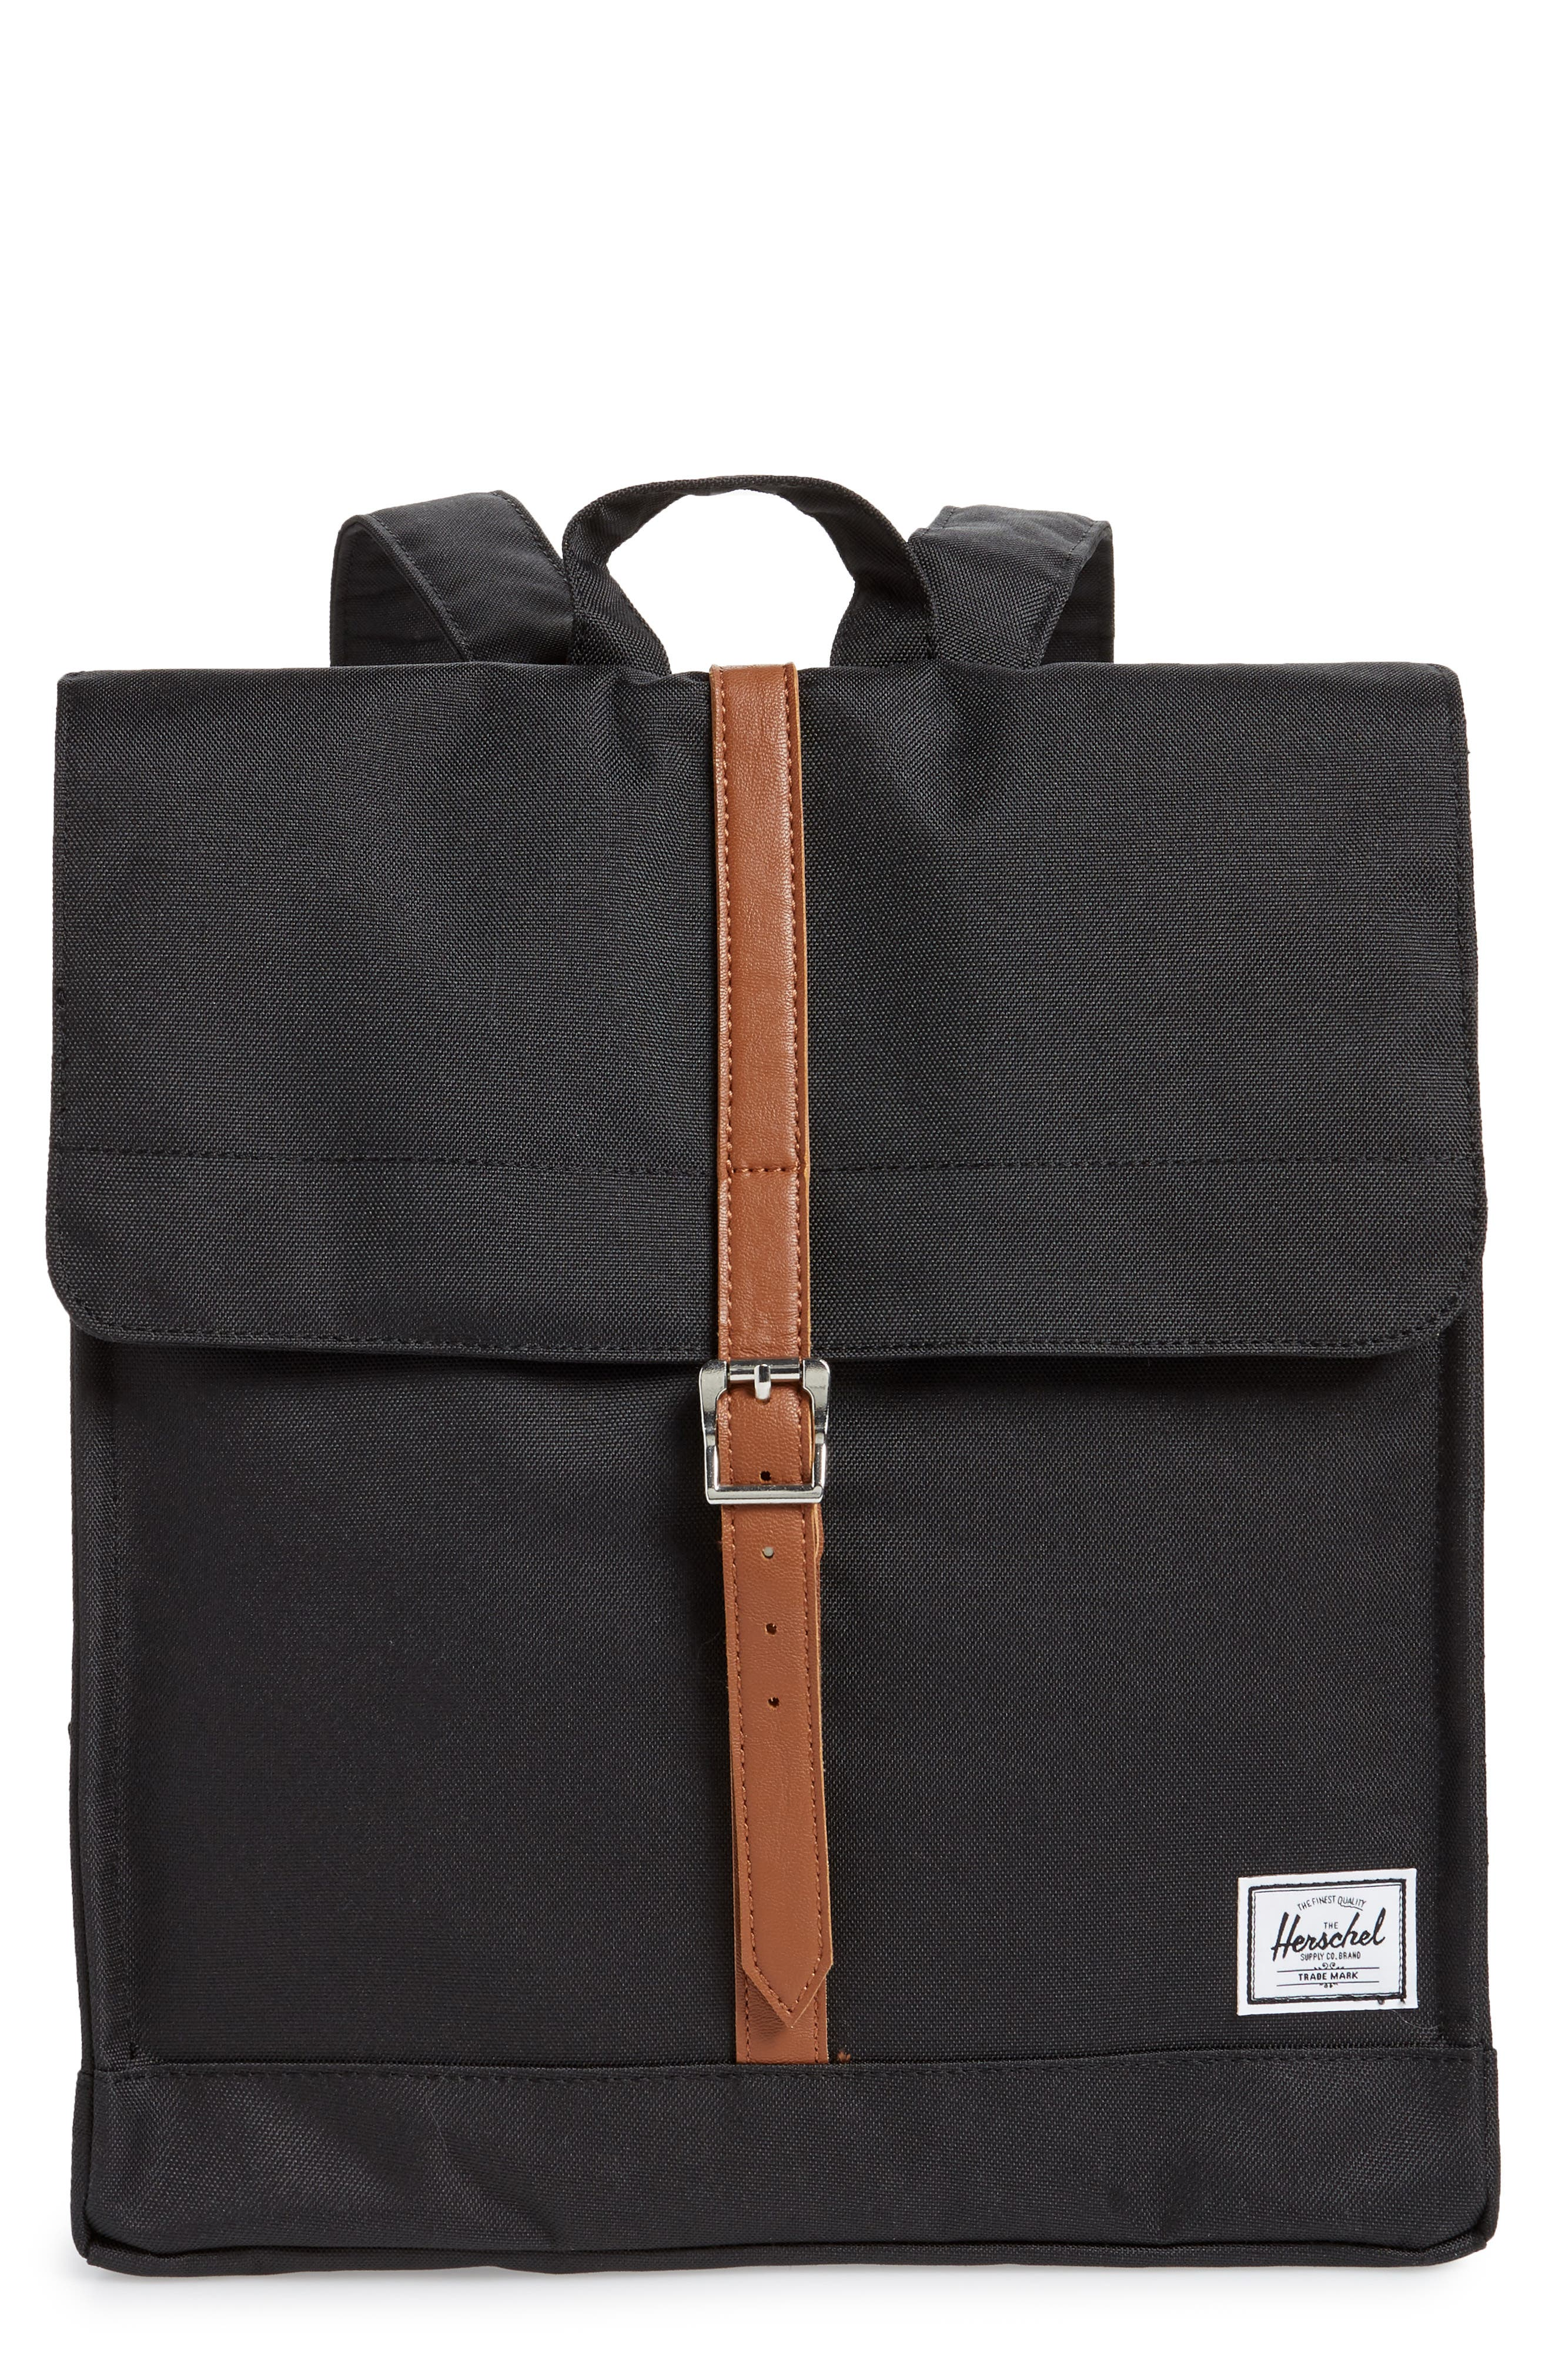 City Mid Volume Backpack - Black in Black/ Tan Synthetic Leather